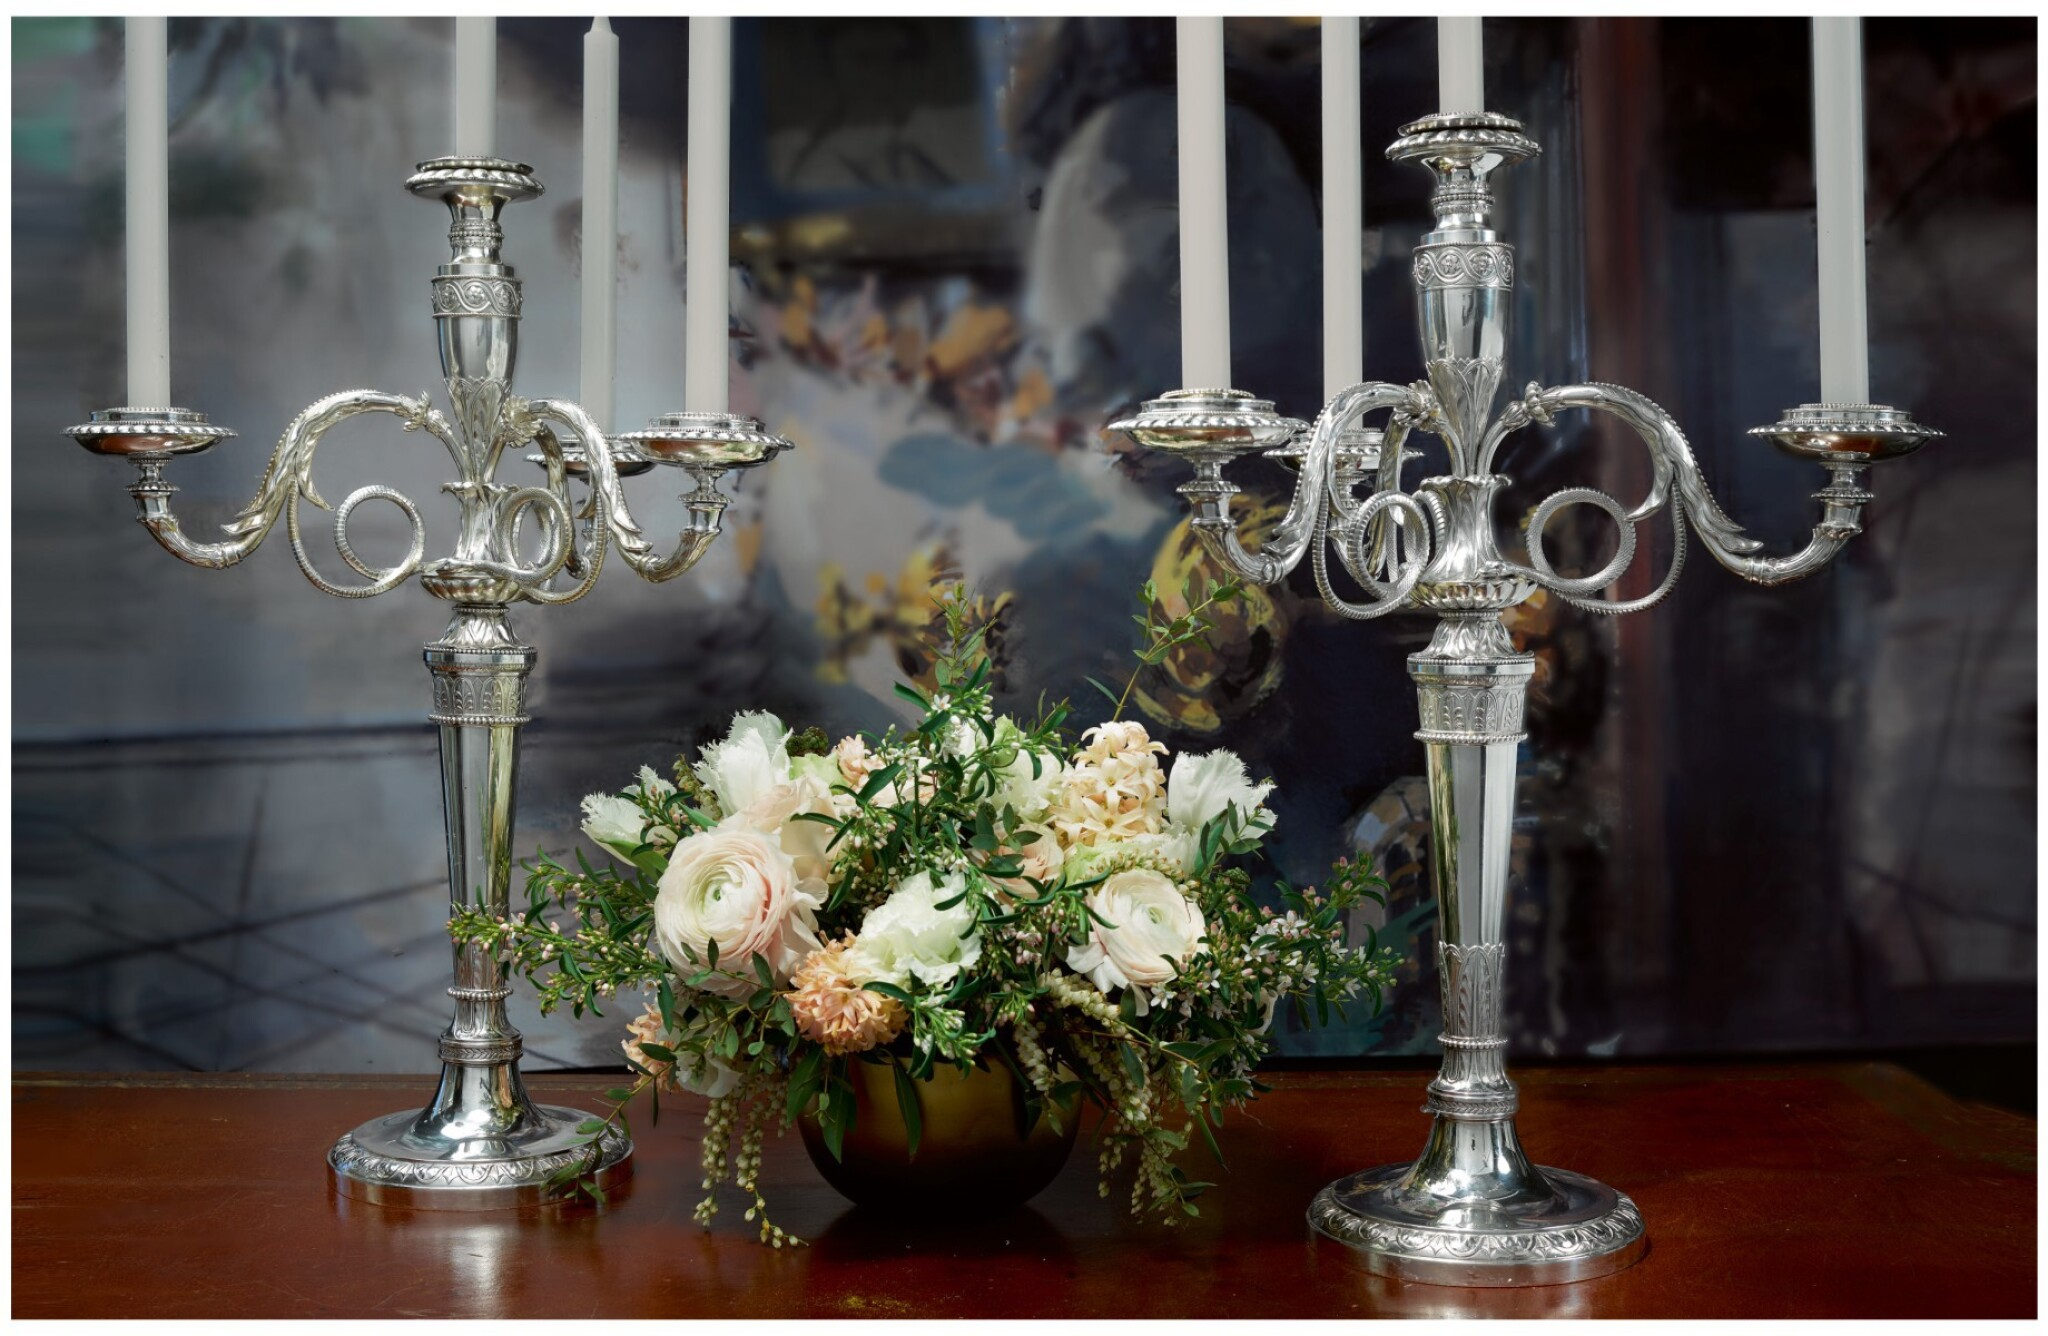 View full screen - View 1 of Lot 36. A PAIR OF GEORGE III SILVER FOUR-LIGHT CANDELABRA AFTER A DESIGN BY JEAN-GUILLAUME MOITTE, BRITANNIA STANDARD, PAUL STORR, LONDON, 1797-98.